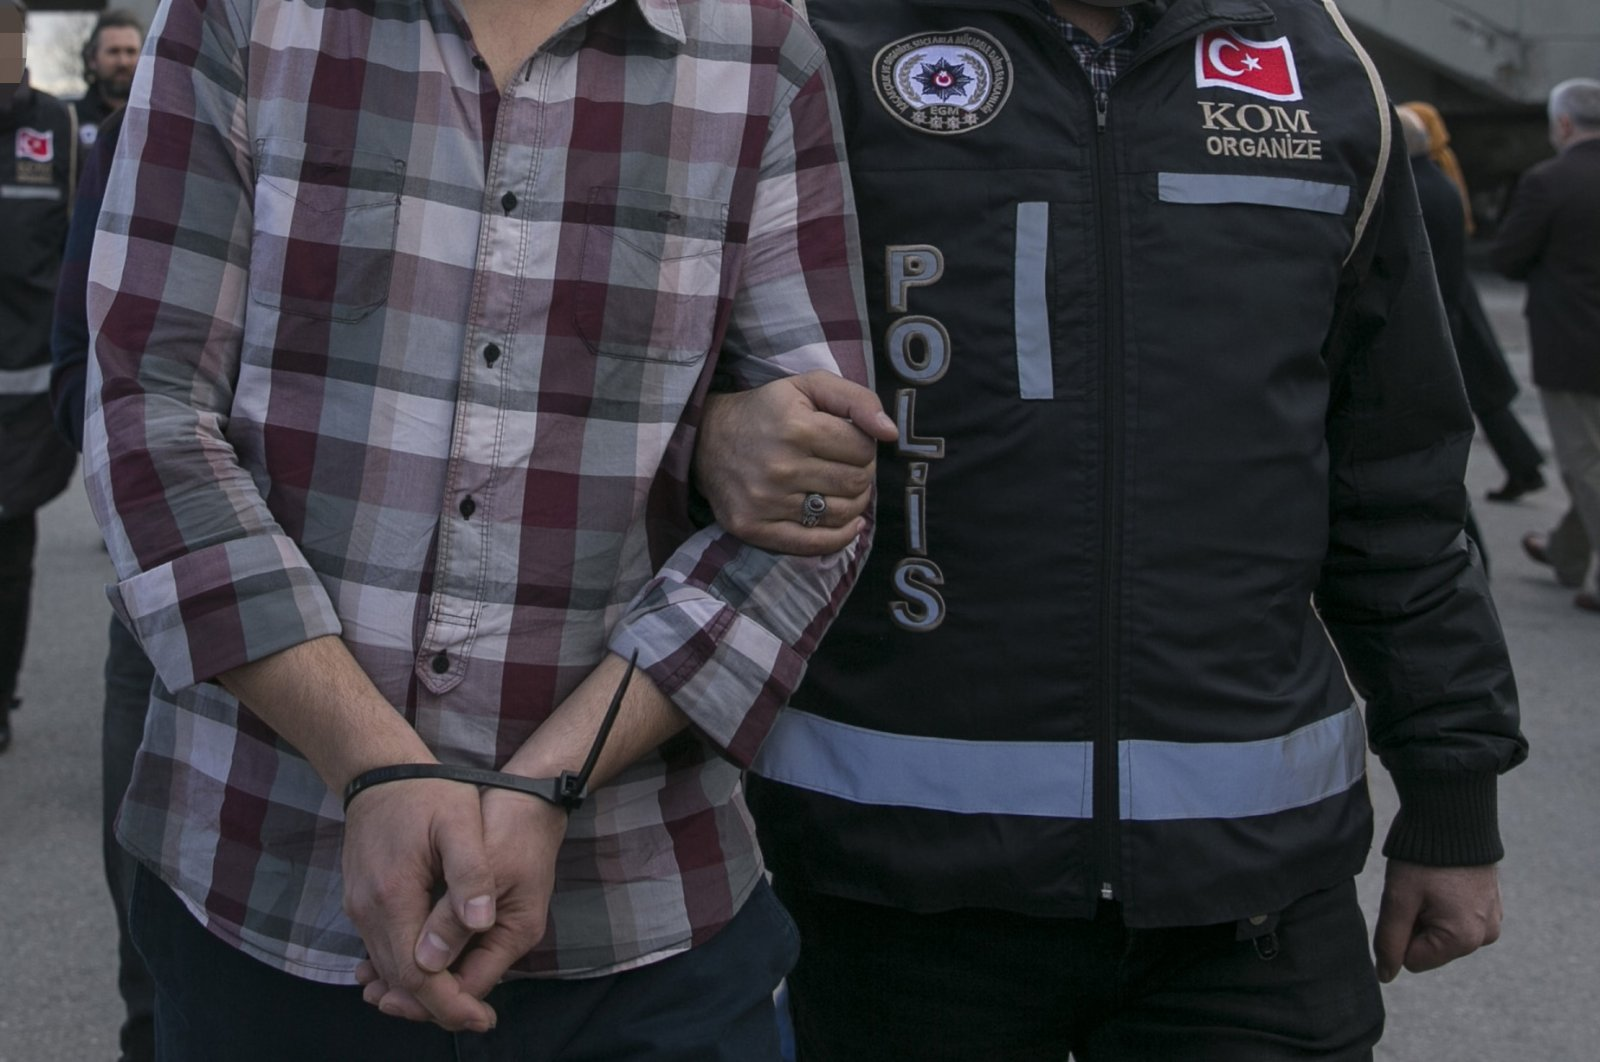 The FETÖ suspects were arrested in simultaneous operations across Turkey. (AA Photo)